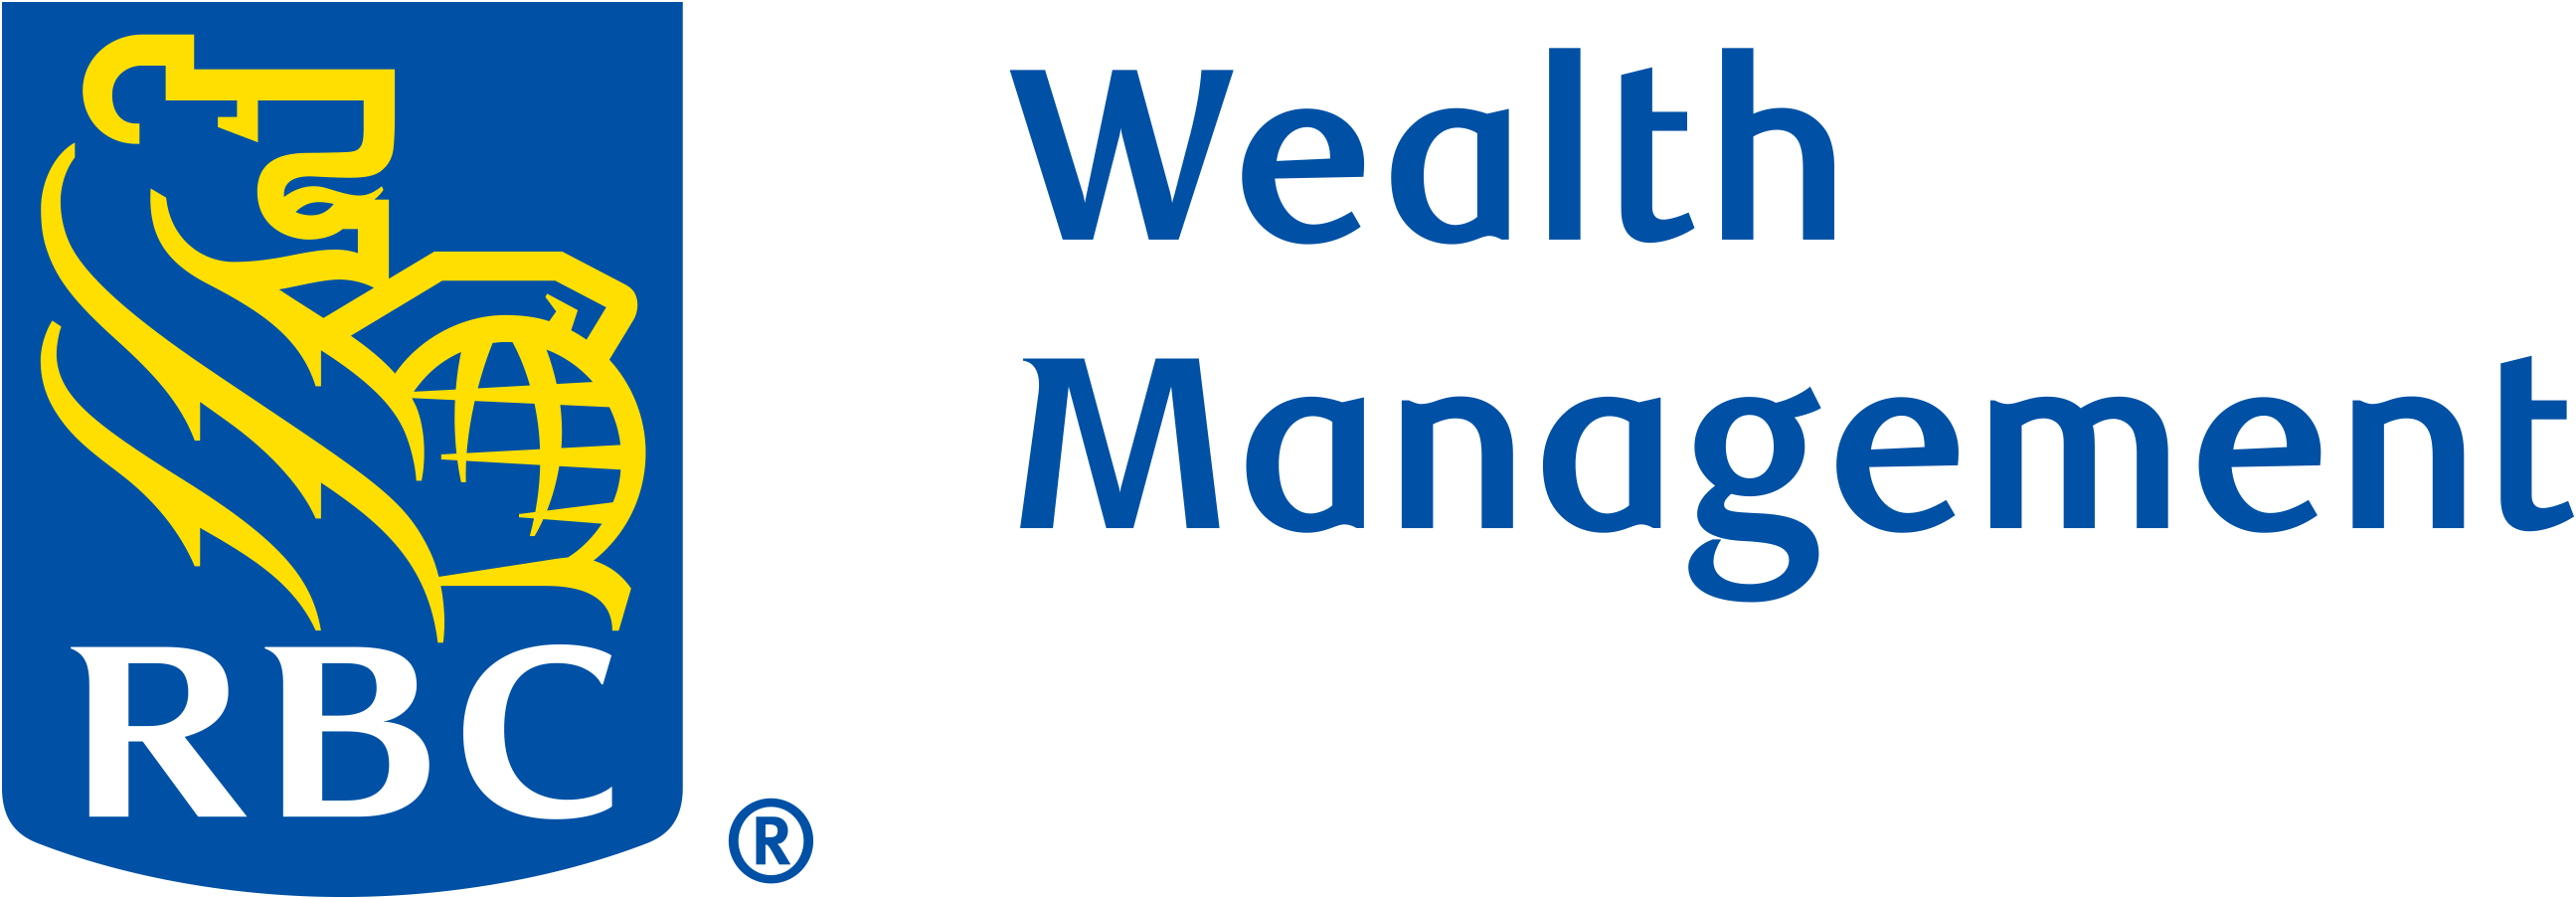 RBC Wealth Management logo with yellow, blue, and white shield